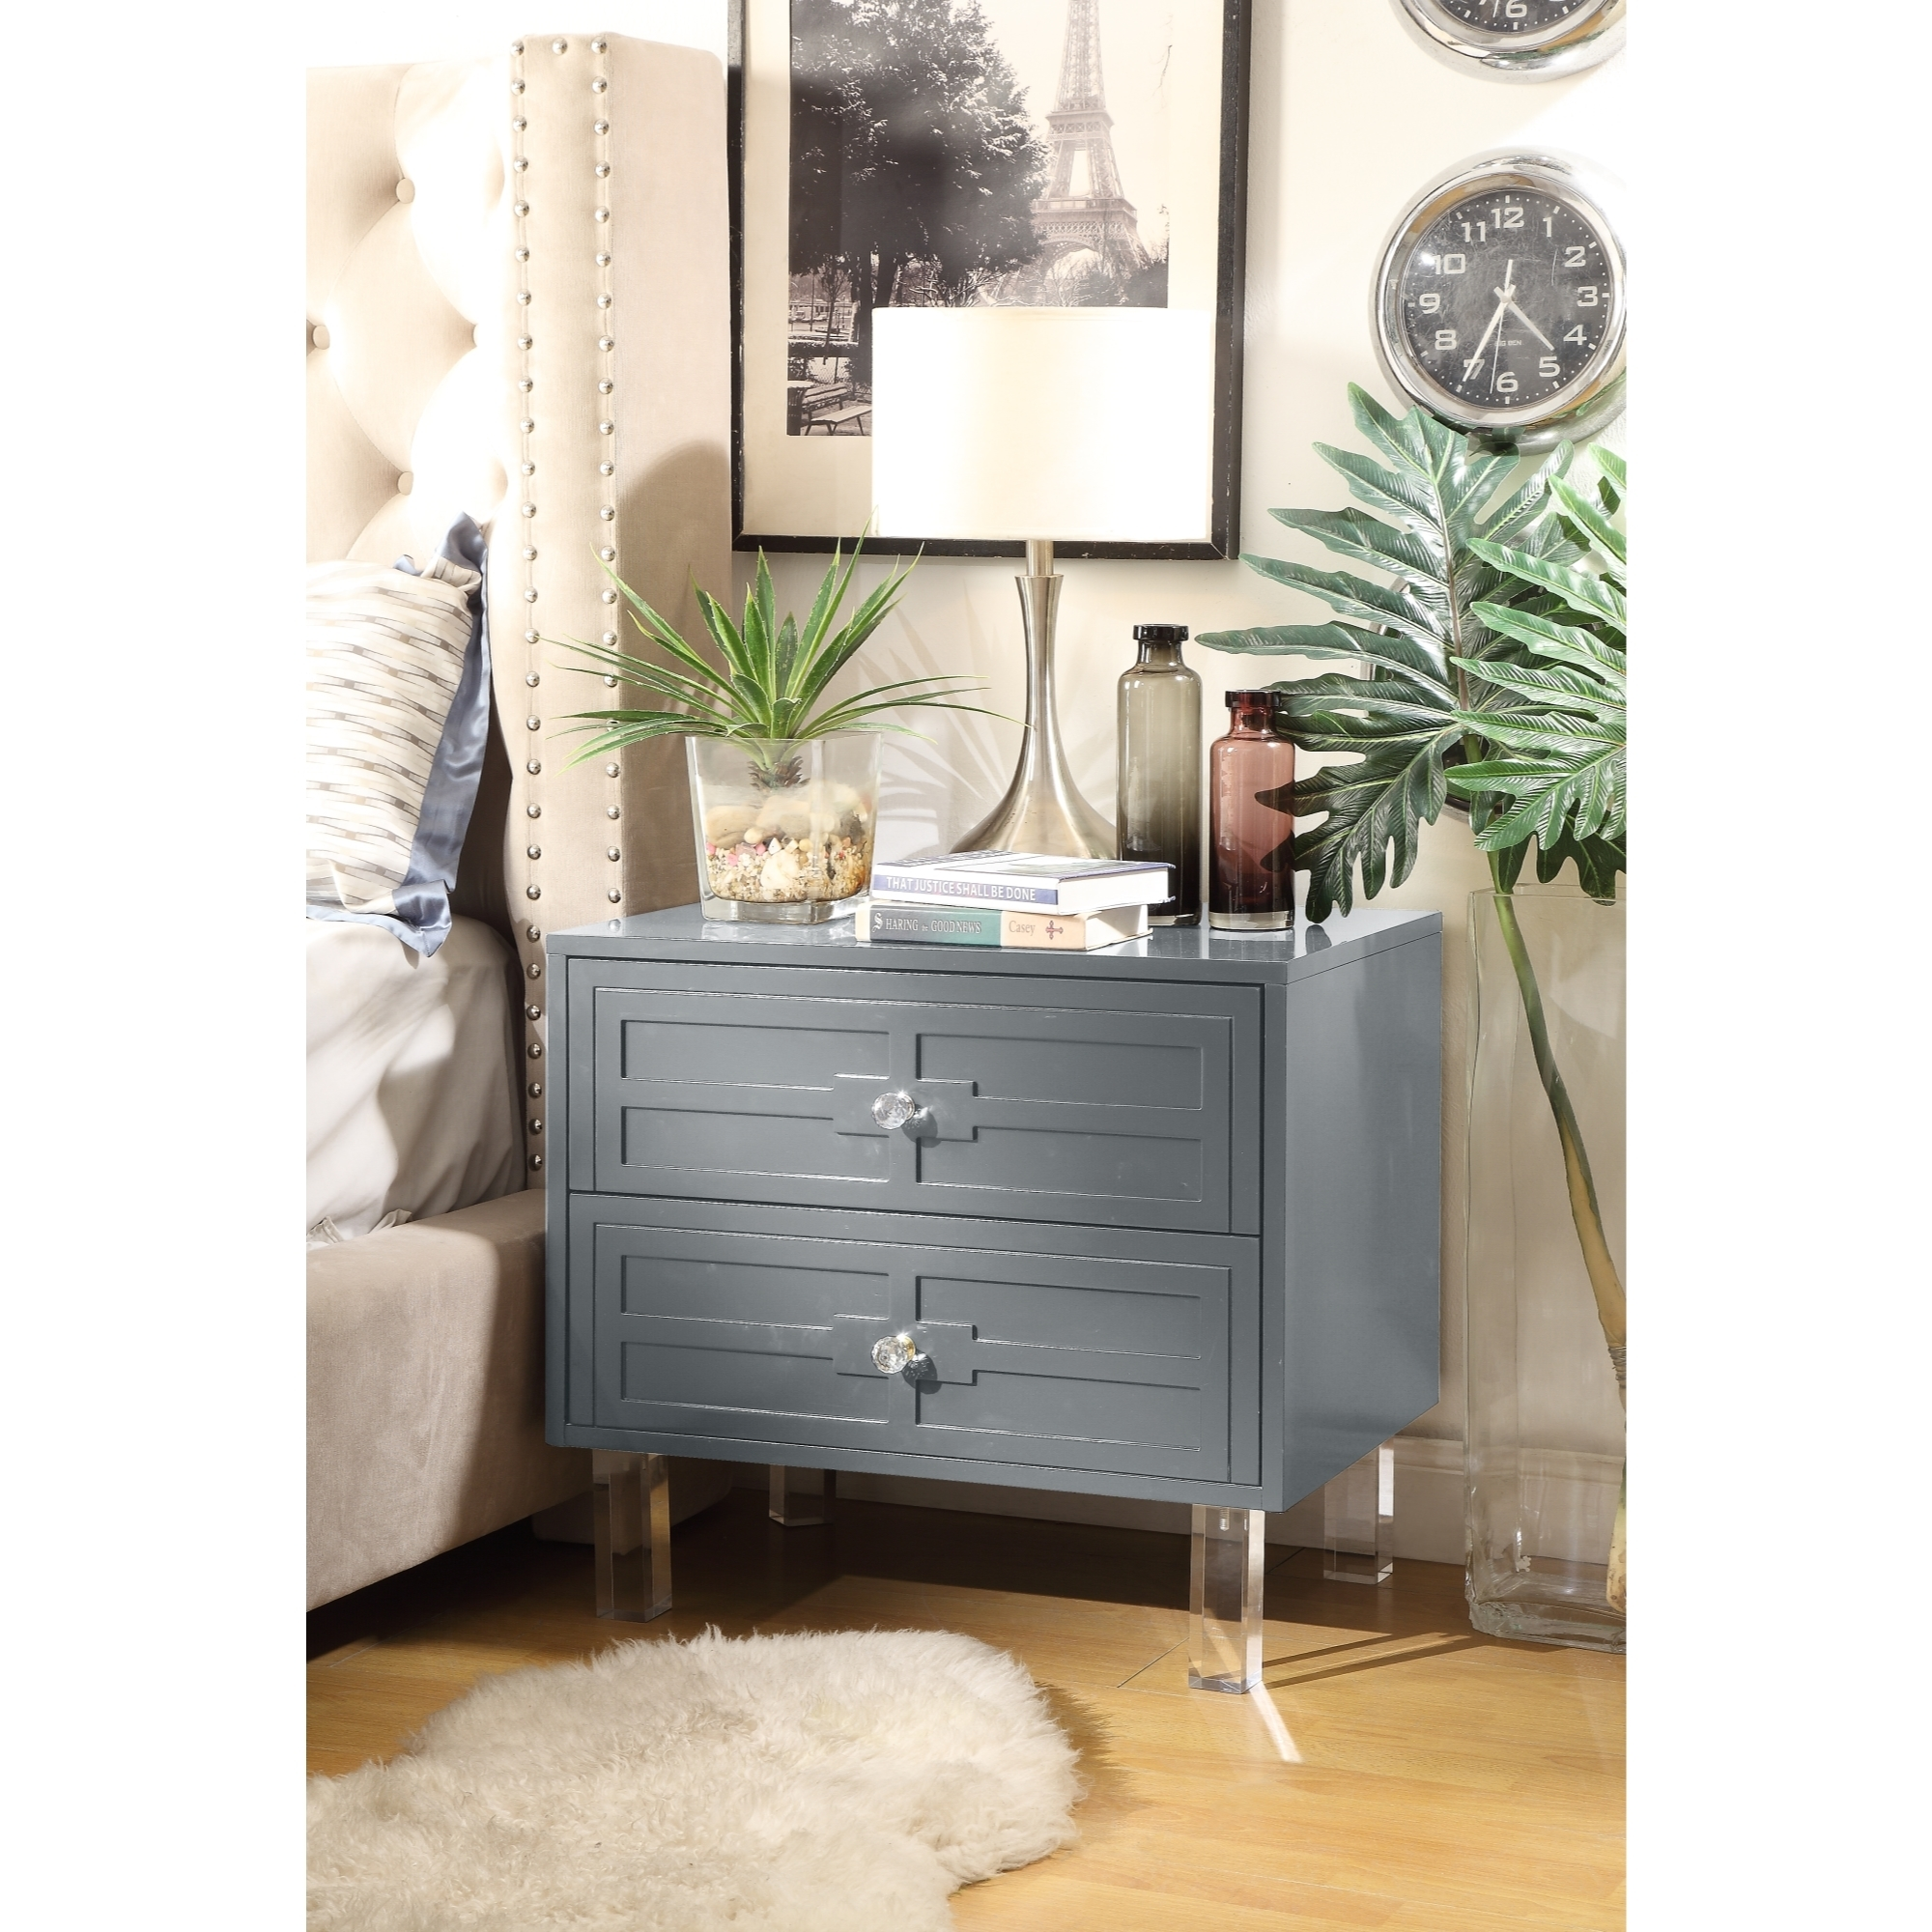 Maya MDF Wood Lacquer - 2 Drawers   Finish Lucite Leg   Side Table   Nightstand   Modern & Functional by Inspired Home - Dark grey